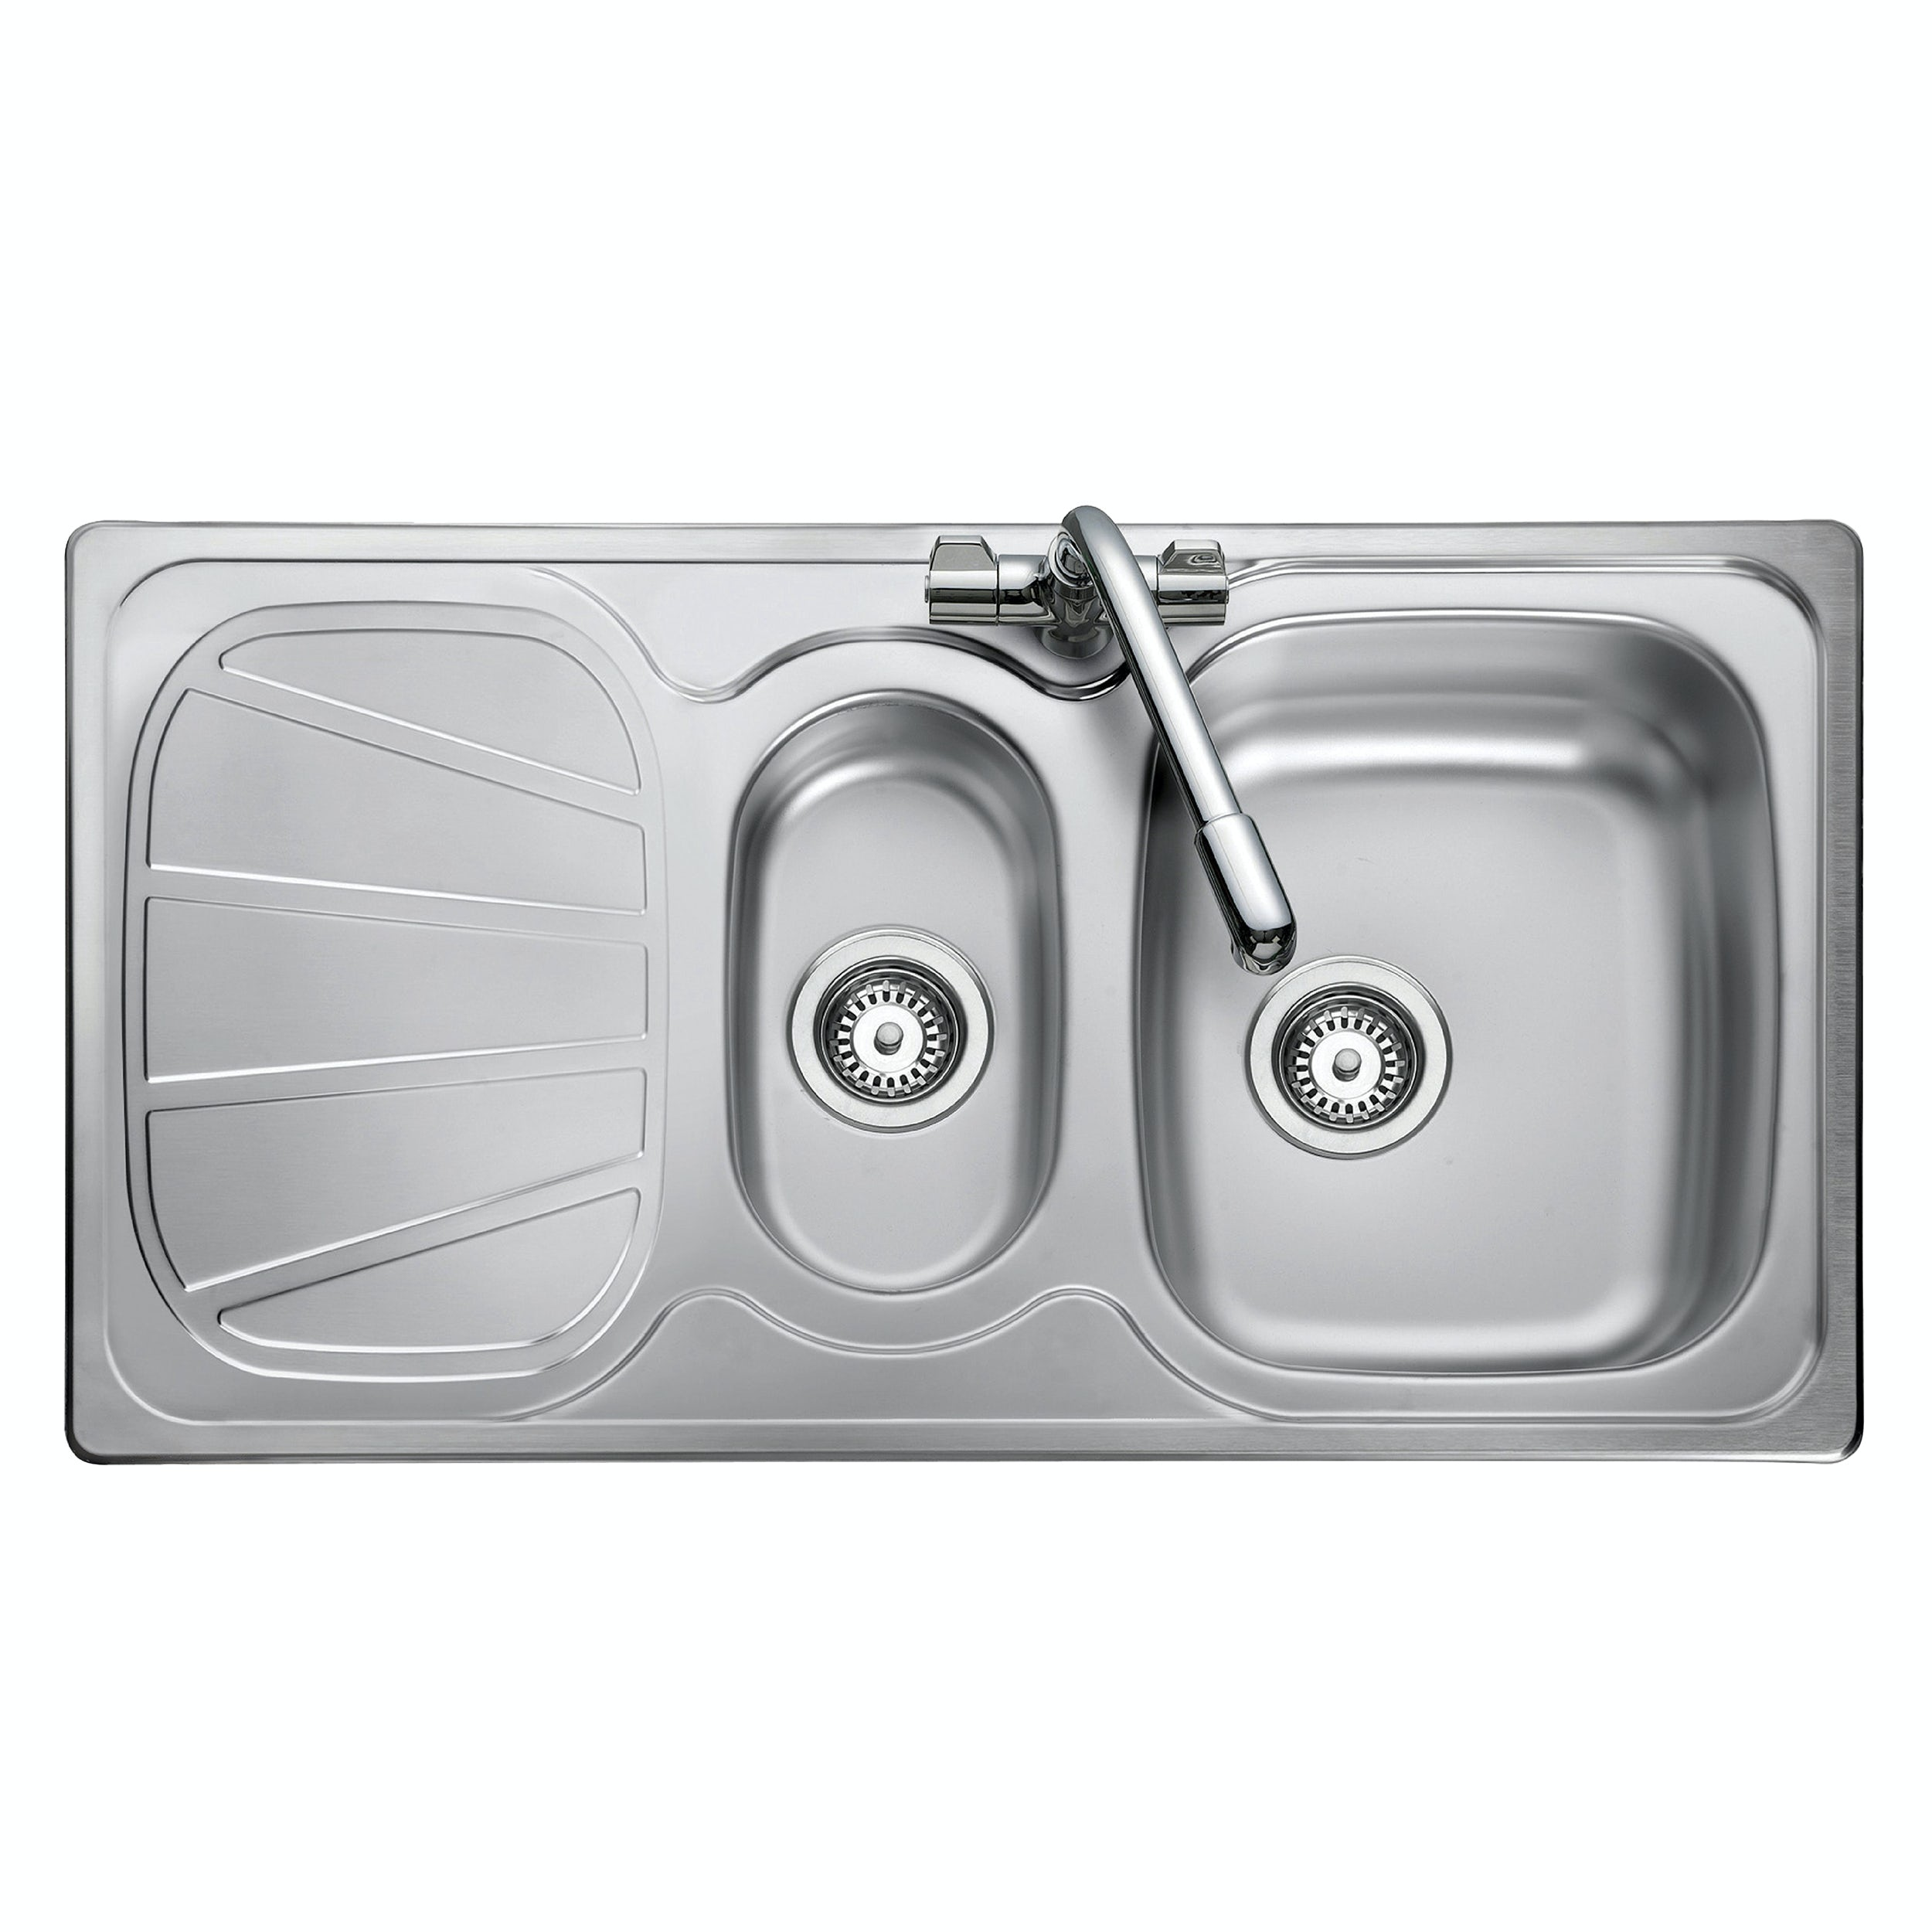 Rangemaster Baltimore 1.5 bowl reversible kitchen sink with waste kit